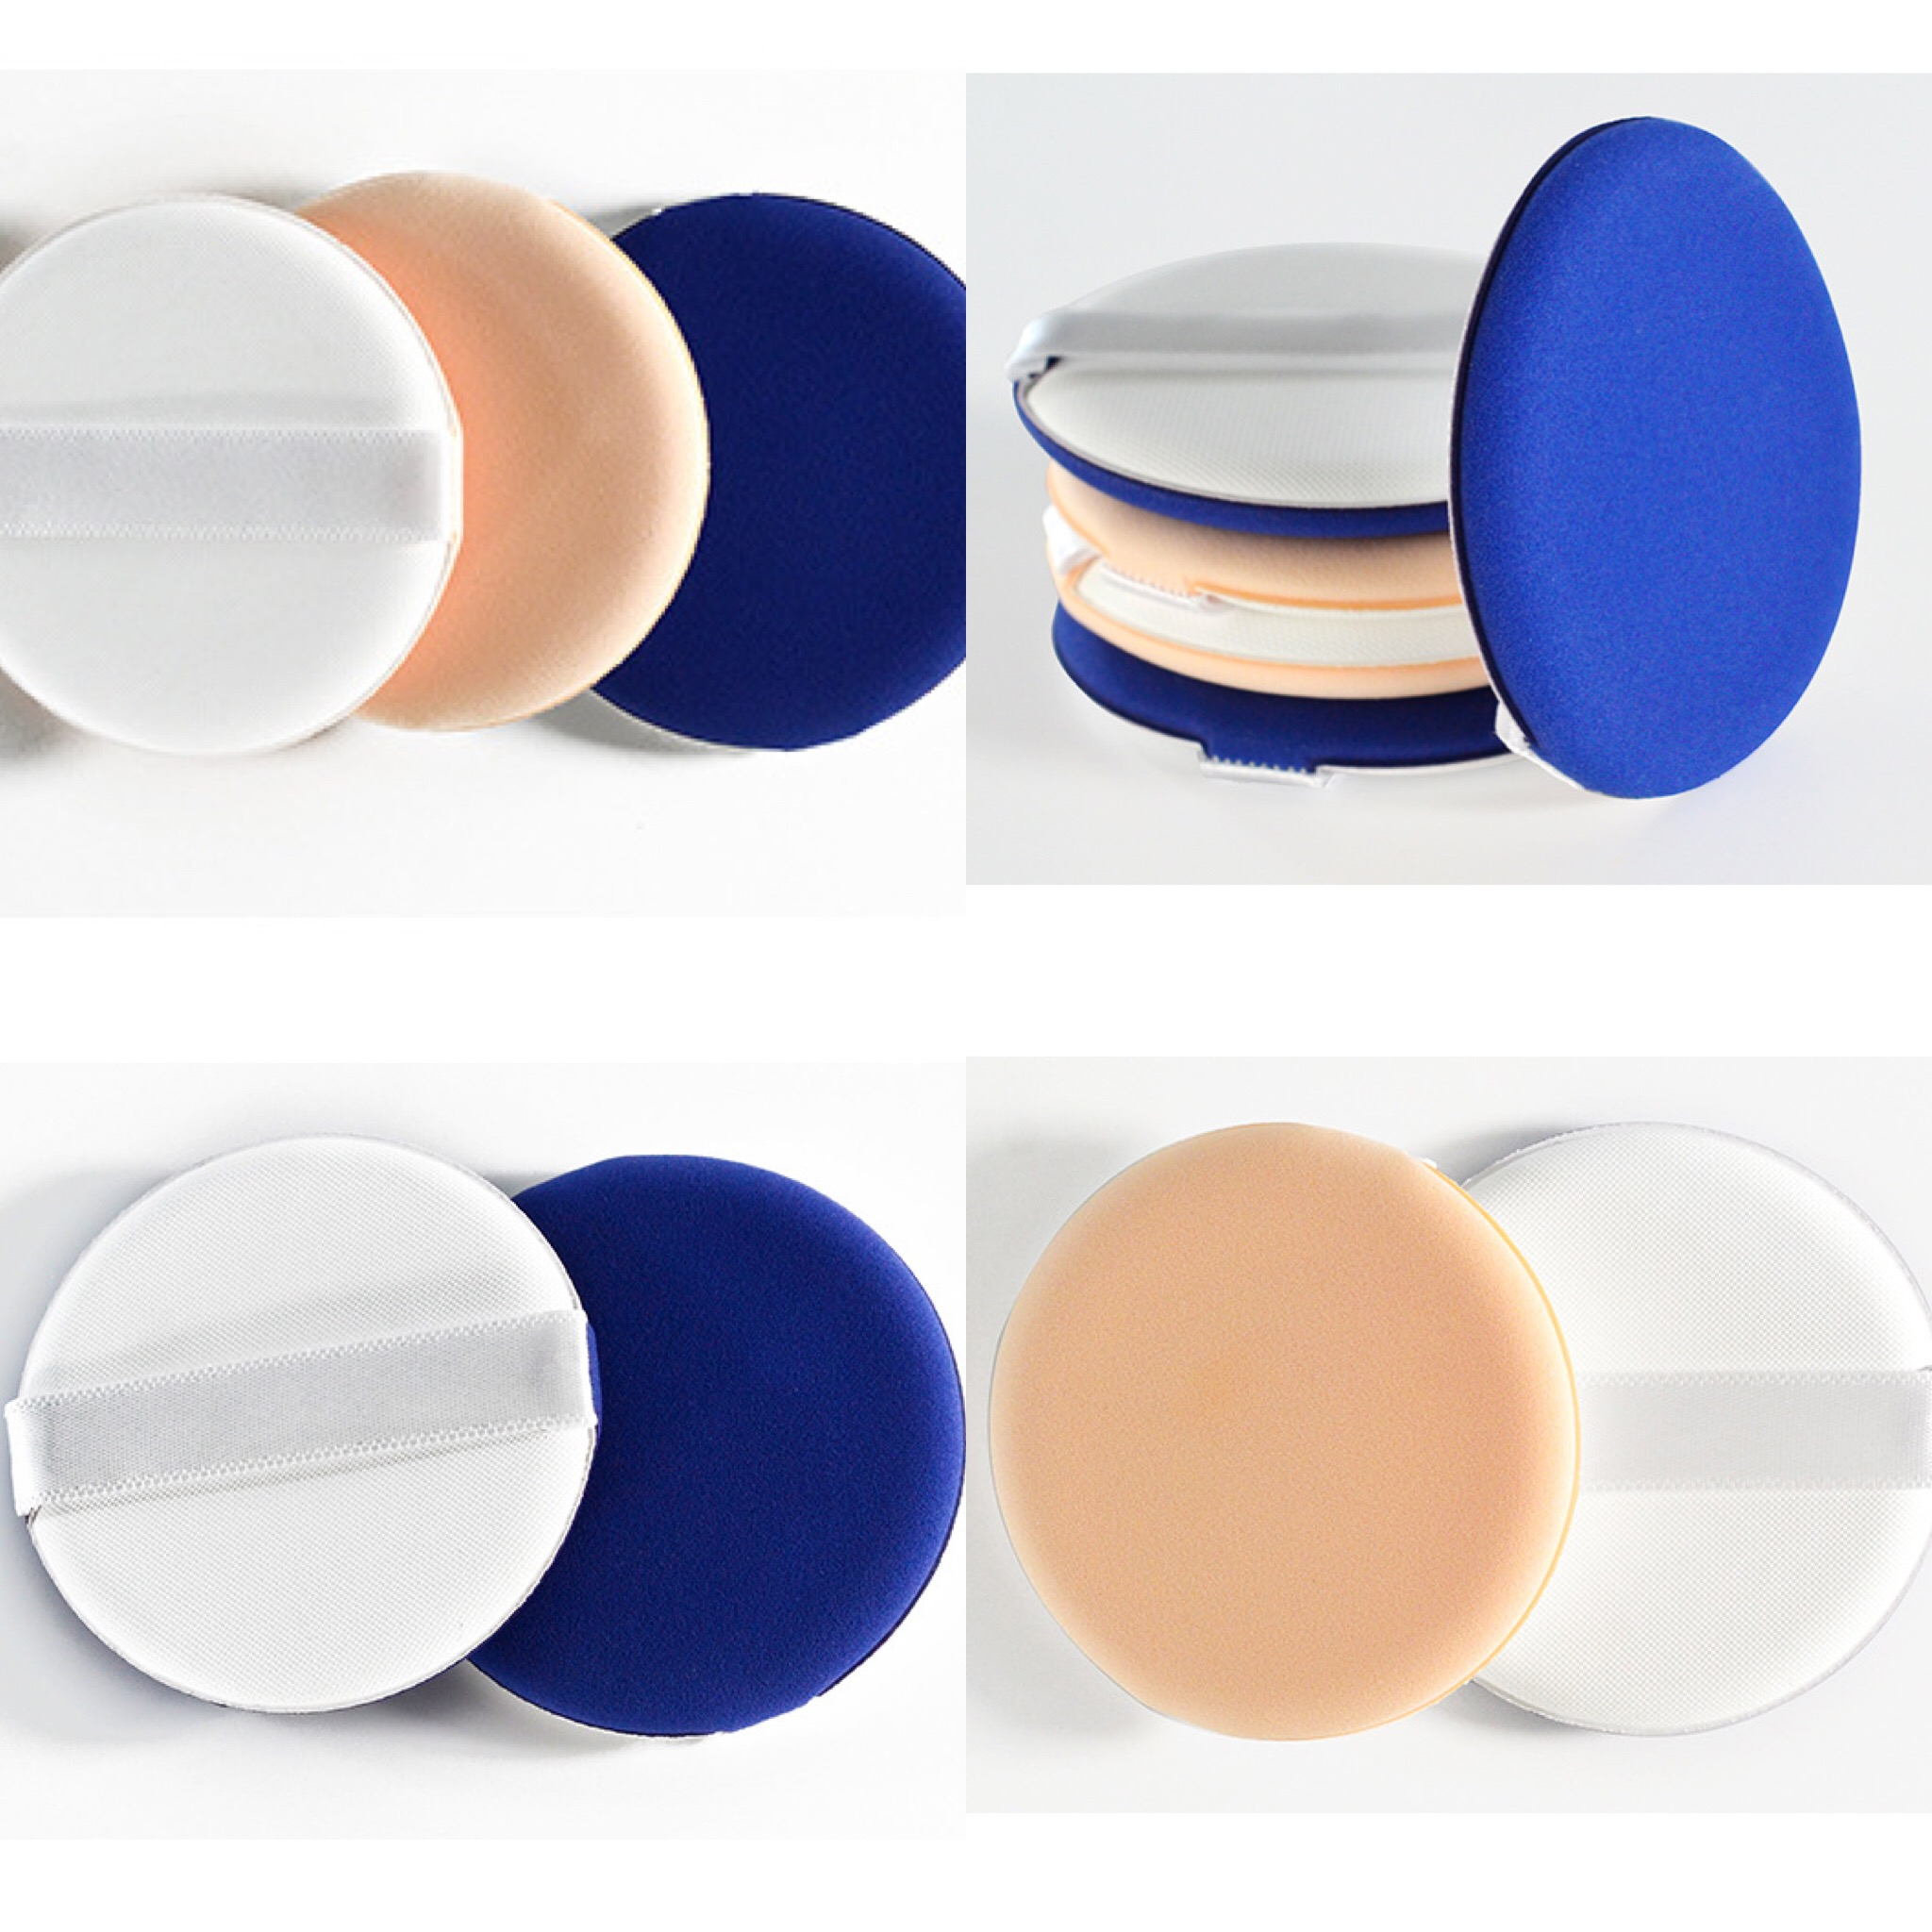 Us 0 54 7 Off Flawless Smooth Facial Powder Puff Cosmetic Soft Sponge Korean Beauty Style Air Cushion Puff Makeup Foundation Bb Cream In Cosmetic